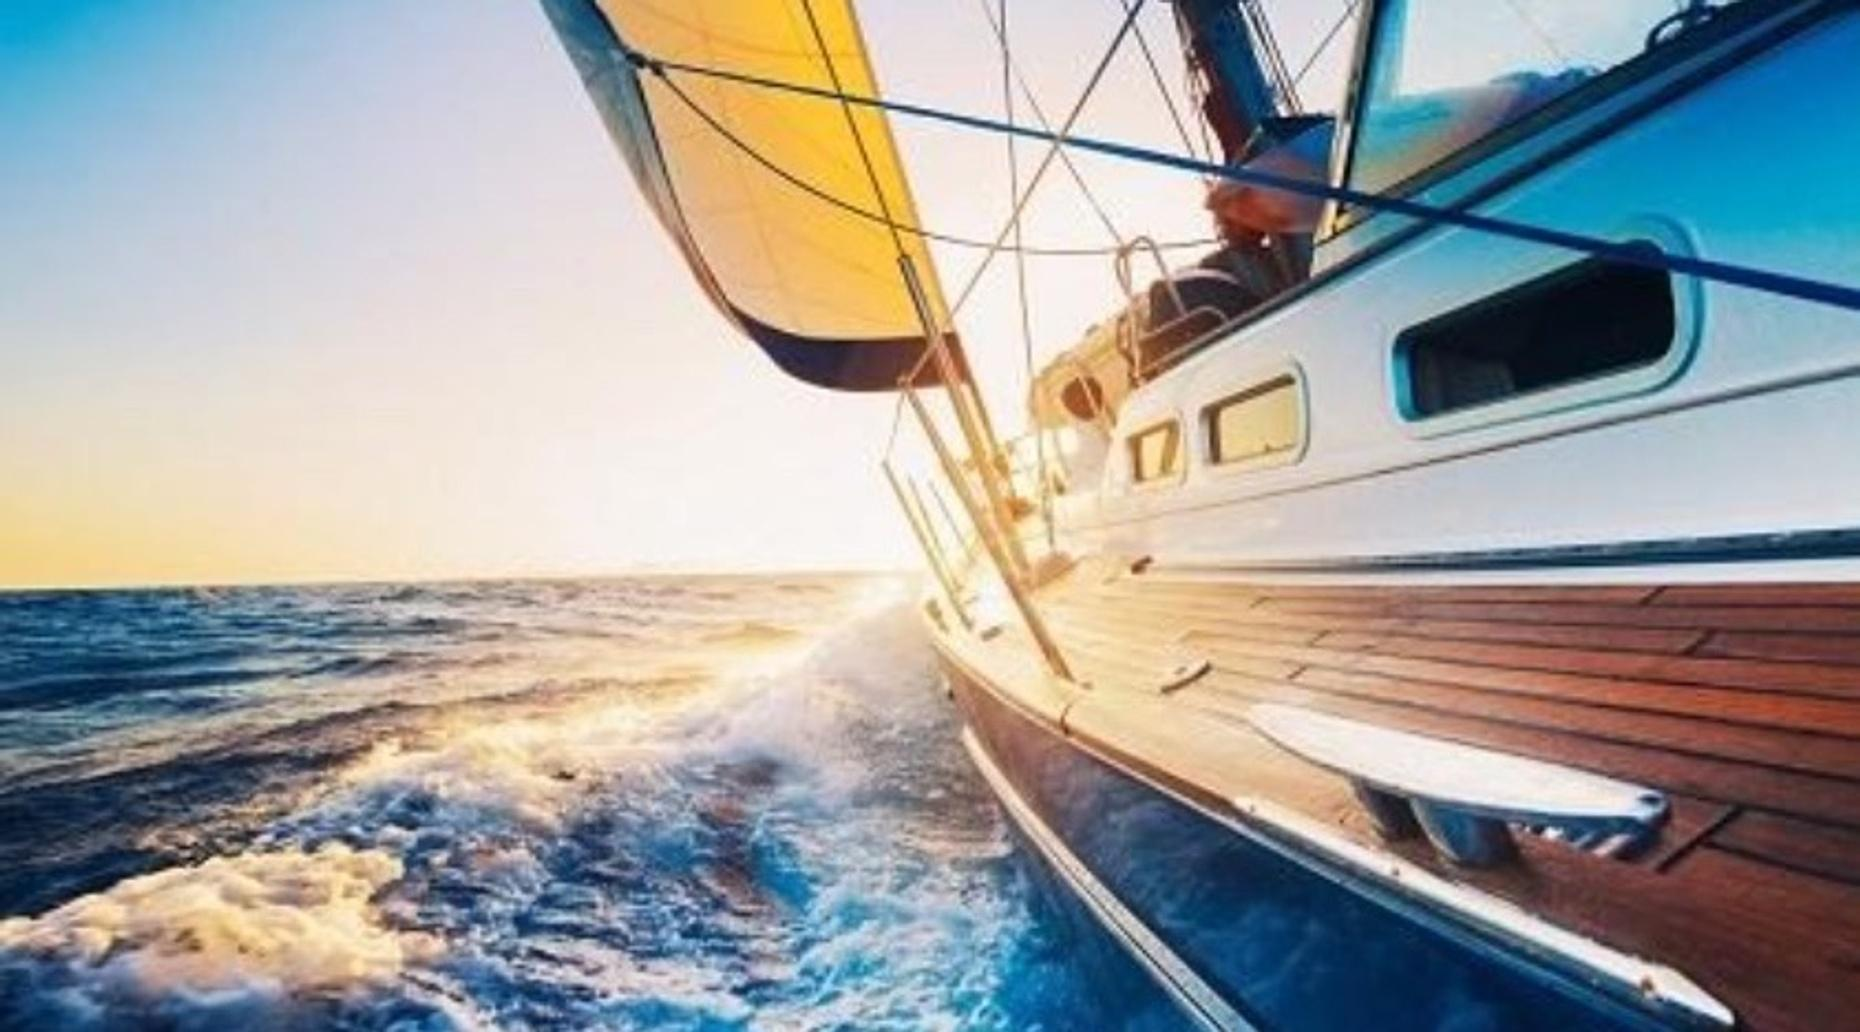 3-Hour Santa Monica Bay Sunset Sail with Gourmet Hors d'oeuvres